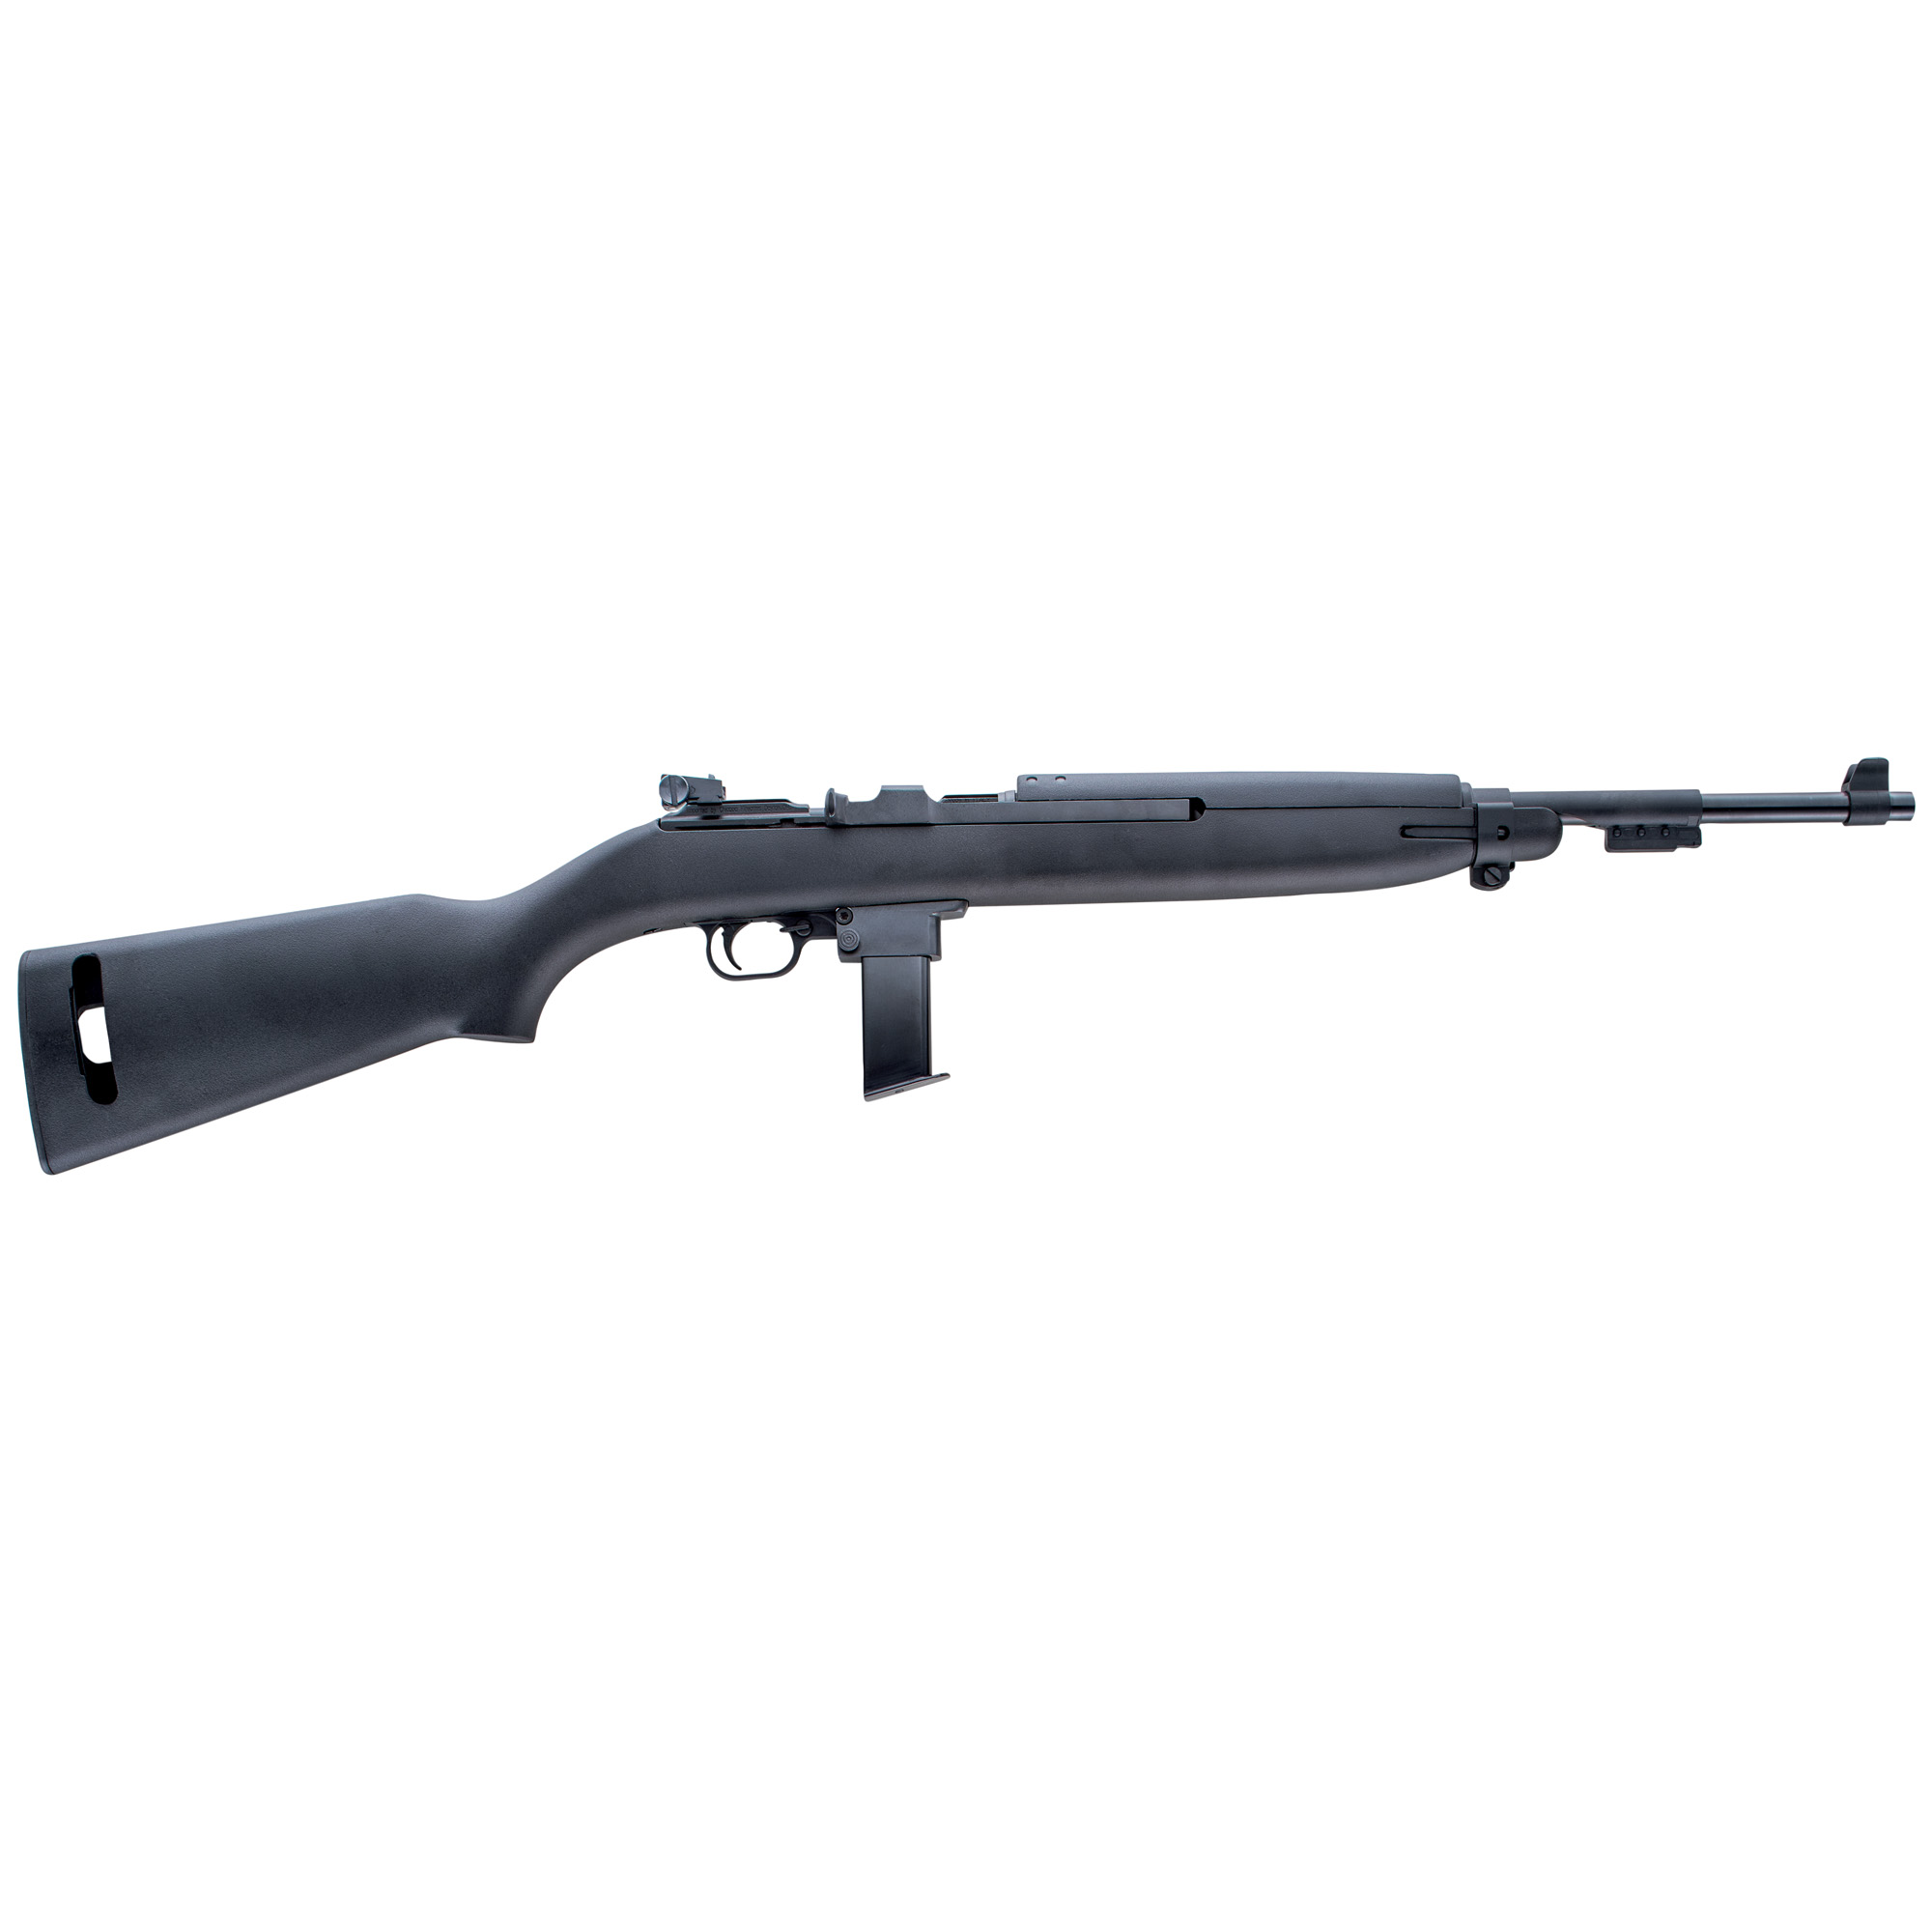 "Modeled after one of America's great military arms"" the USGI M1 Carbine"" the M1-9 is nostalgic"" fun and practical. This handy"" easy to shoot rifle has the same overall dimensions"" trigger group design and sights as the original"" but is chambered in the affordable and readily available 9mm Luger."